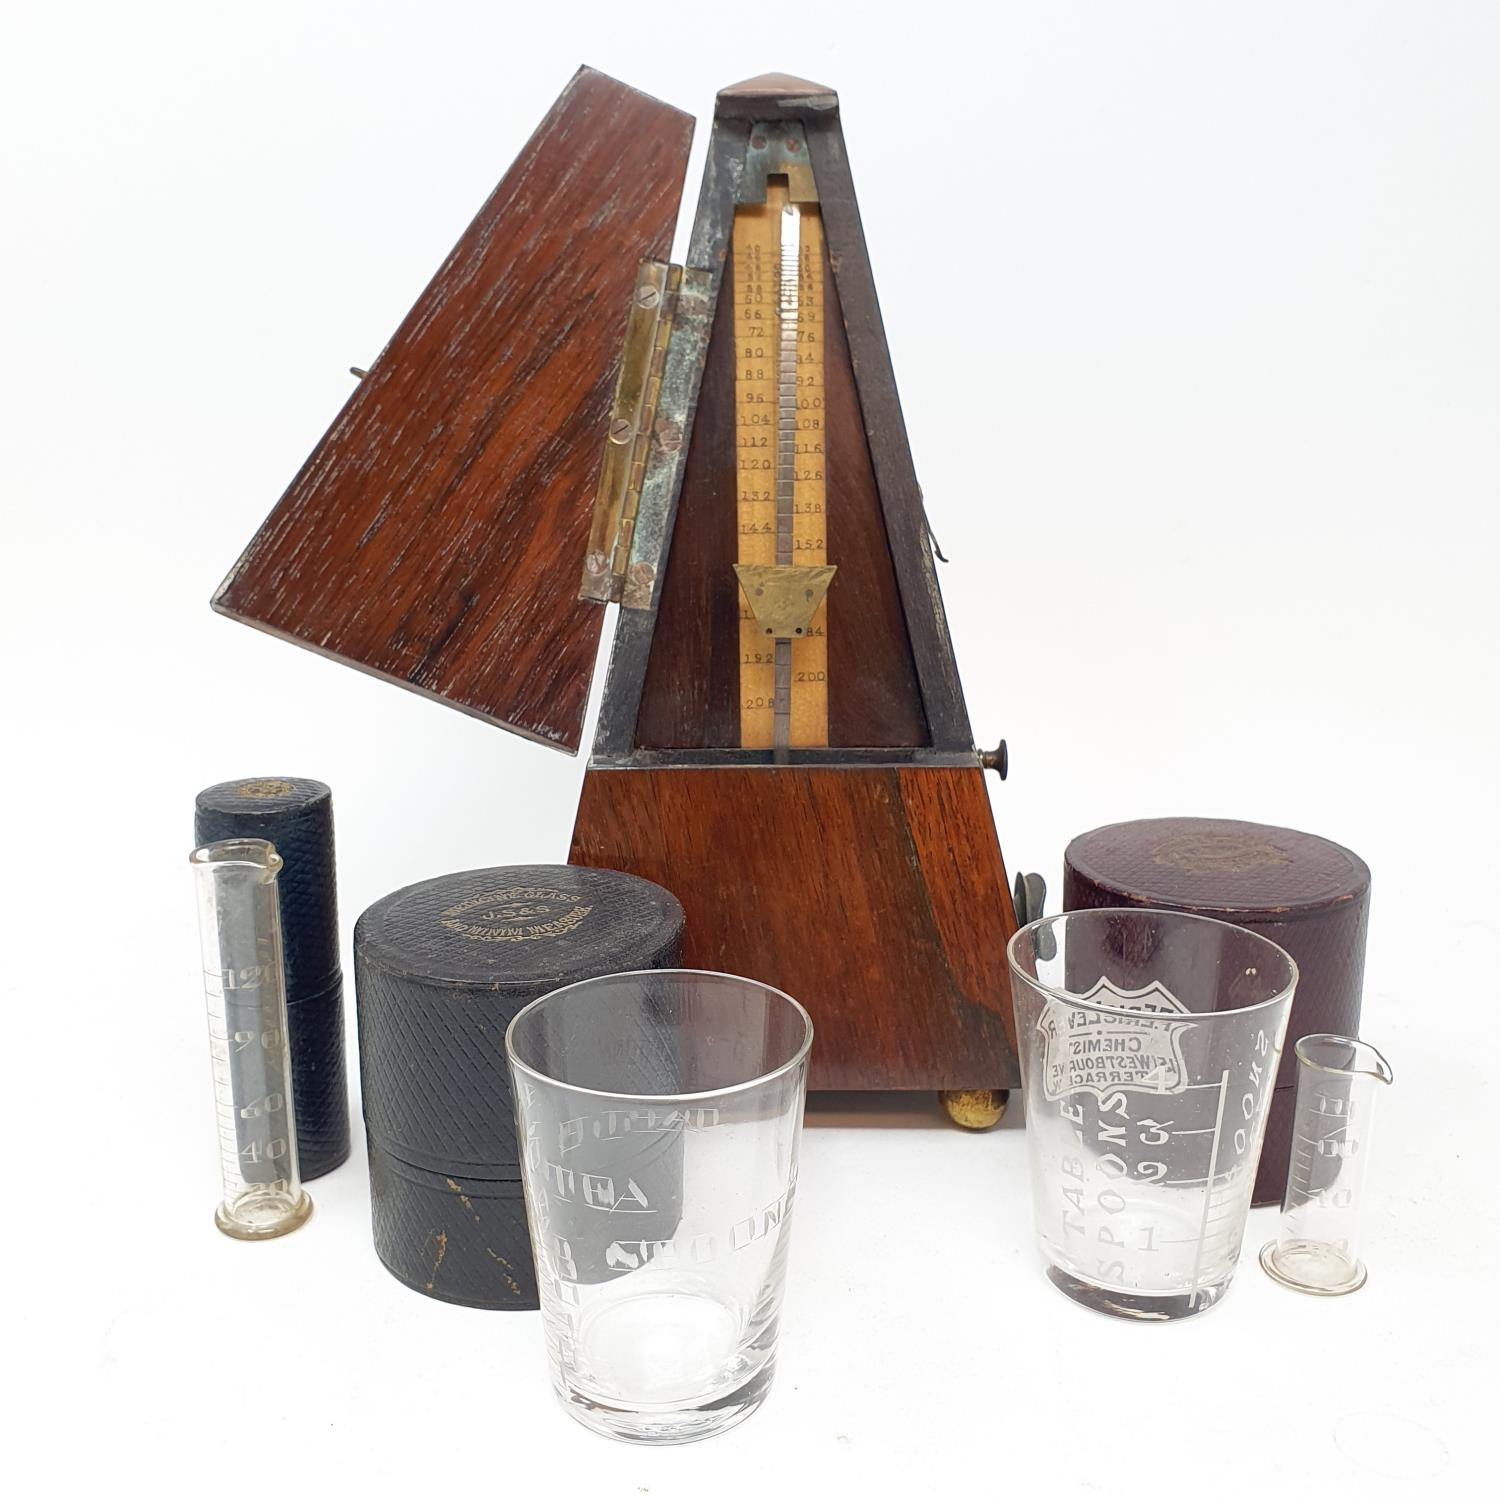 An early 20th century metronome, in a rosewood case, nine glass measures in leather cases and